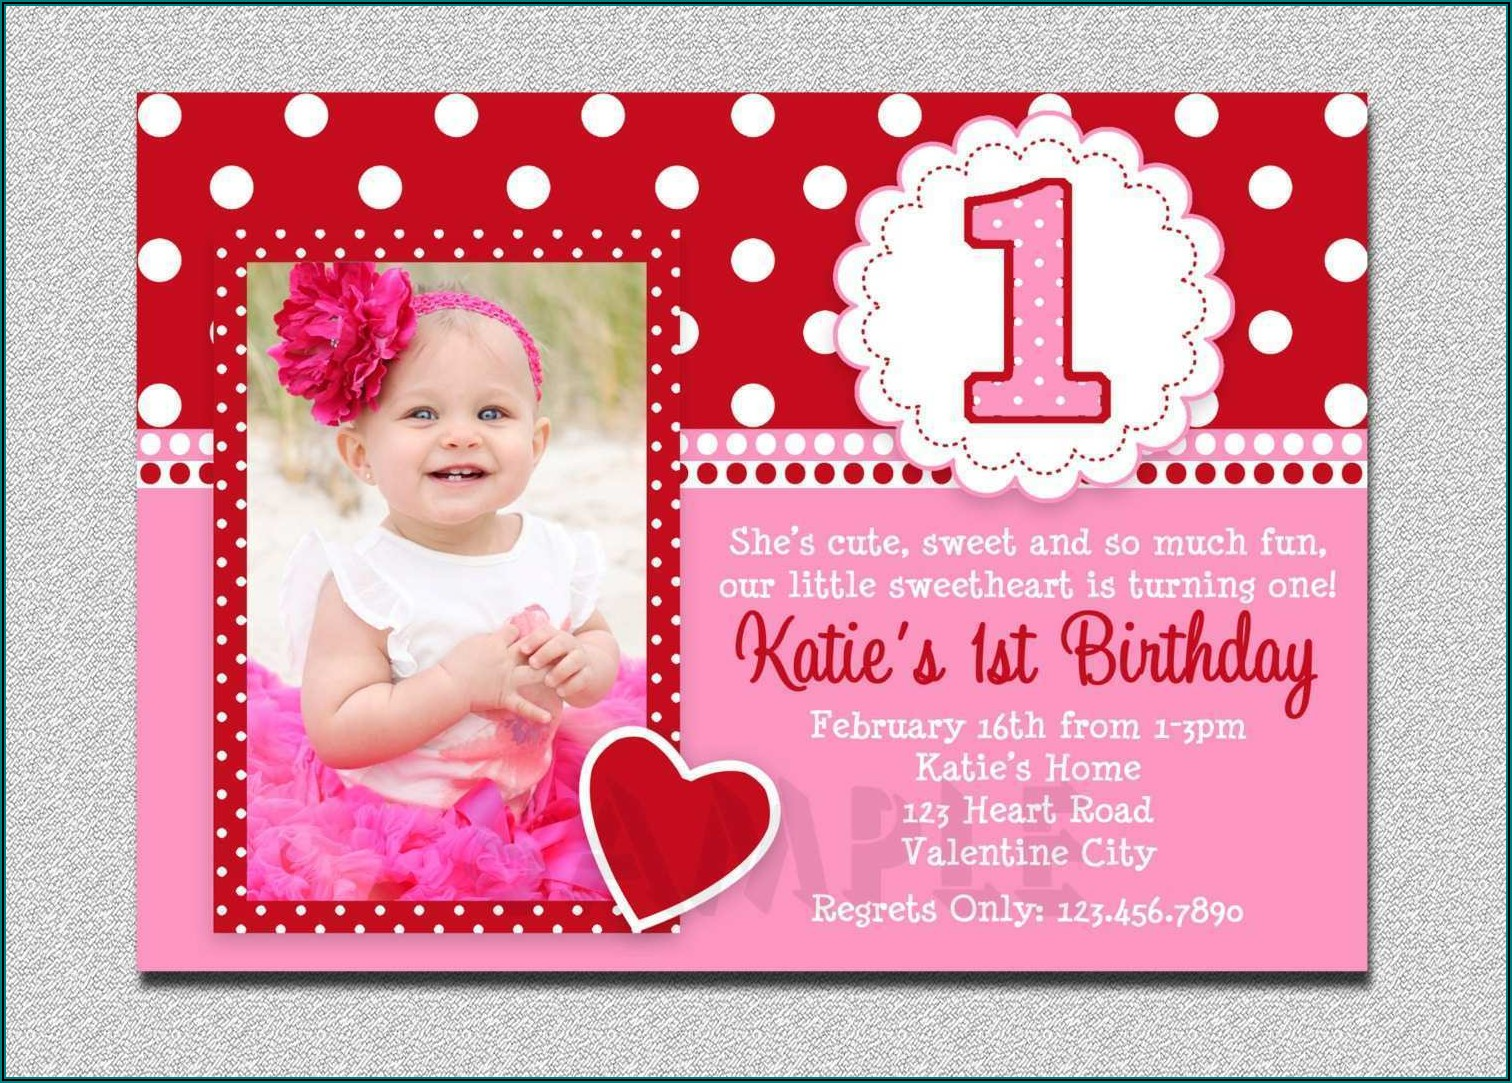 1st Birthday Invitation Template With Photo